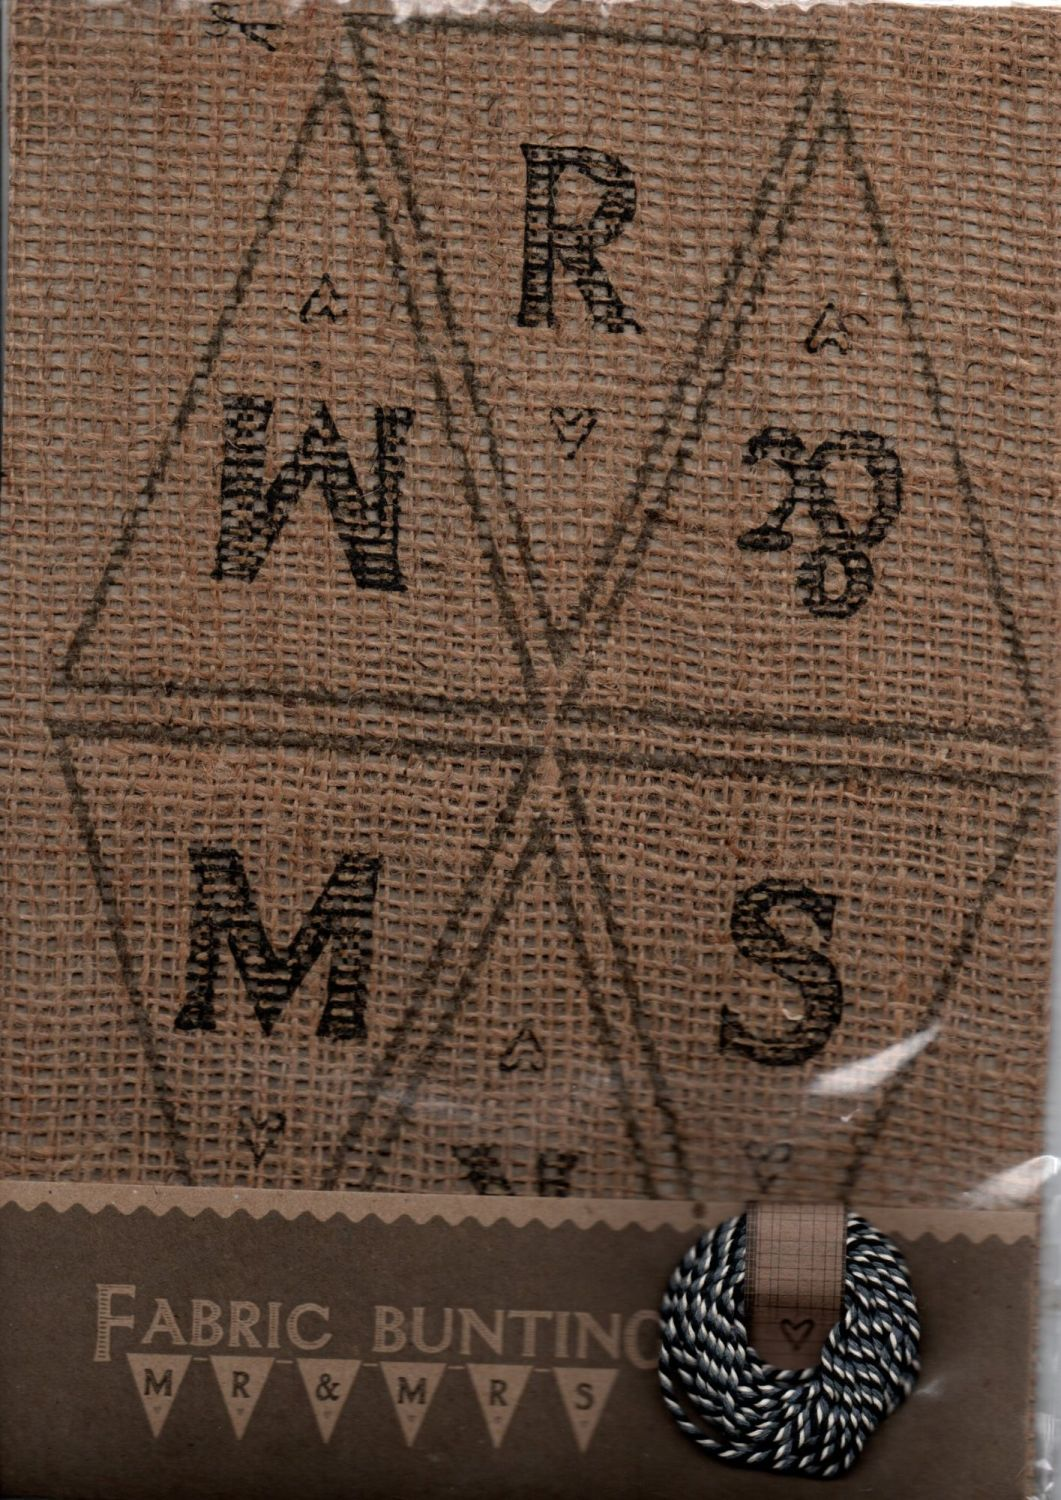 East of India MR and MRS Fabric Bunting Kit